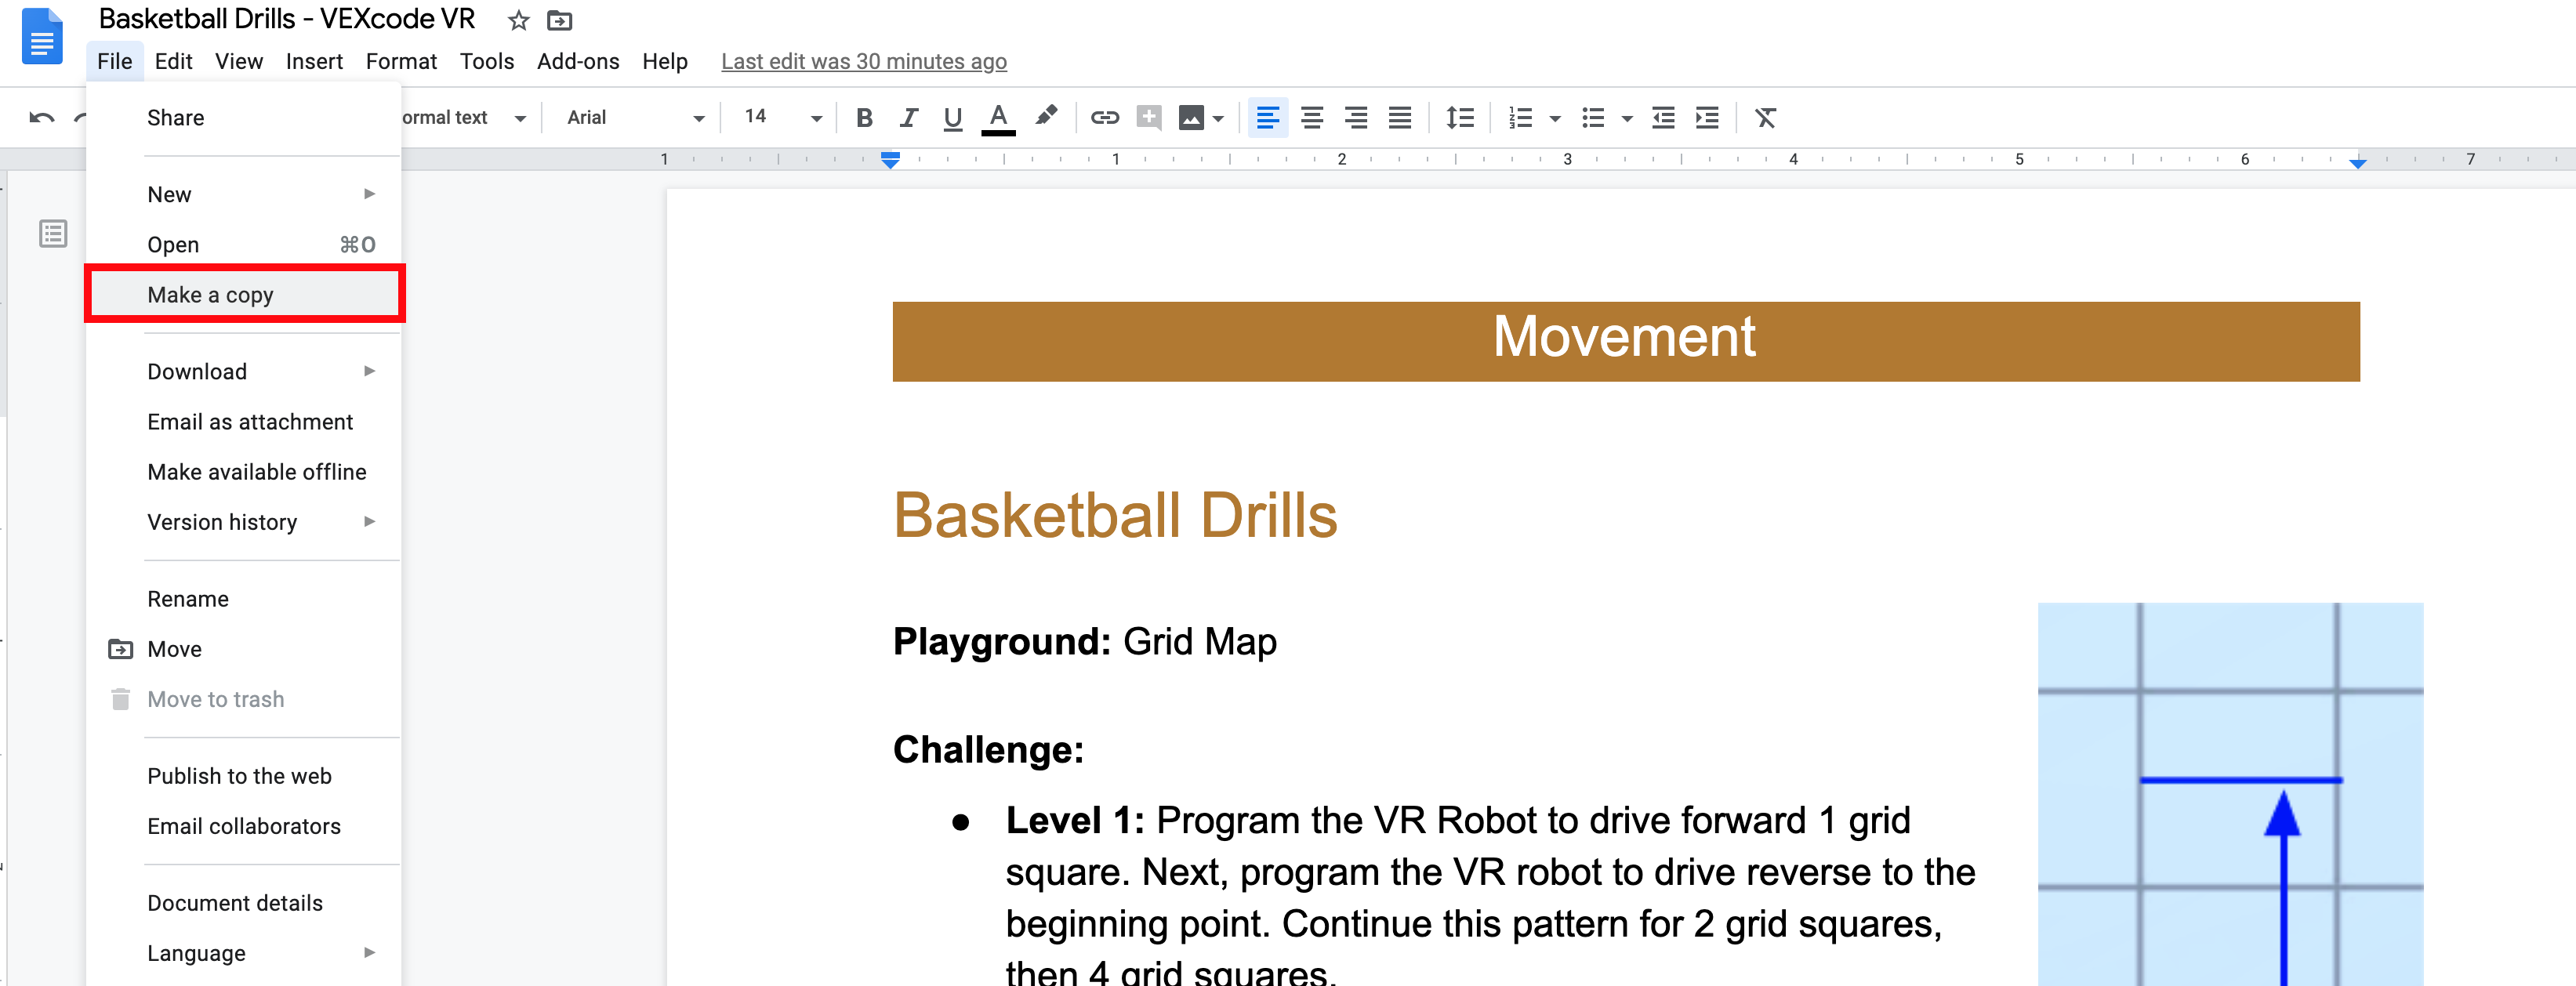 Make a copy of the Basketball Drills Activity